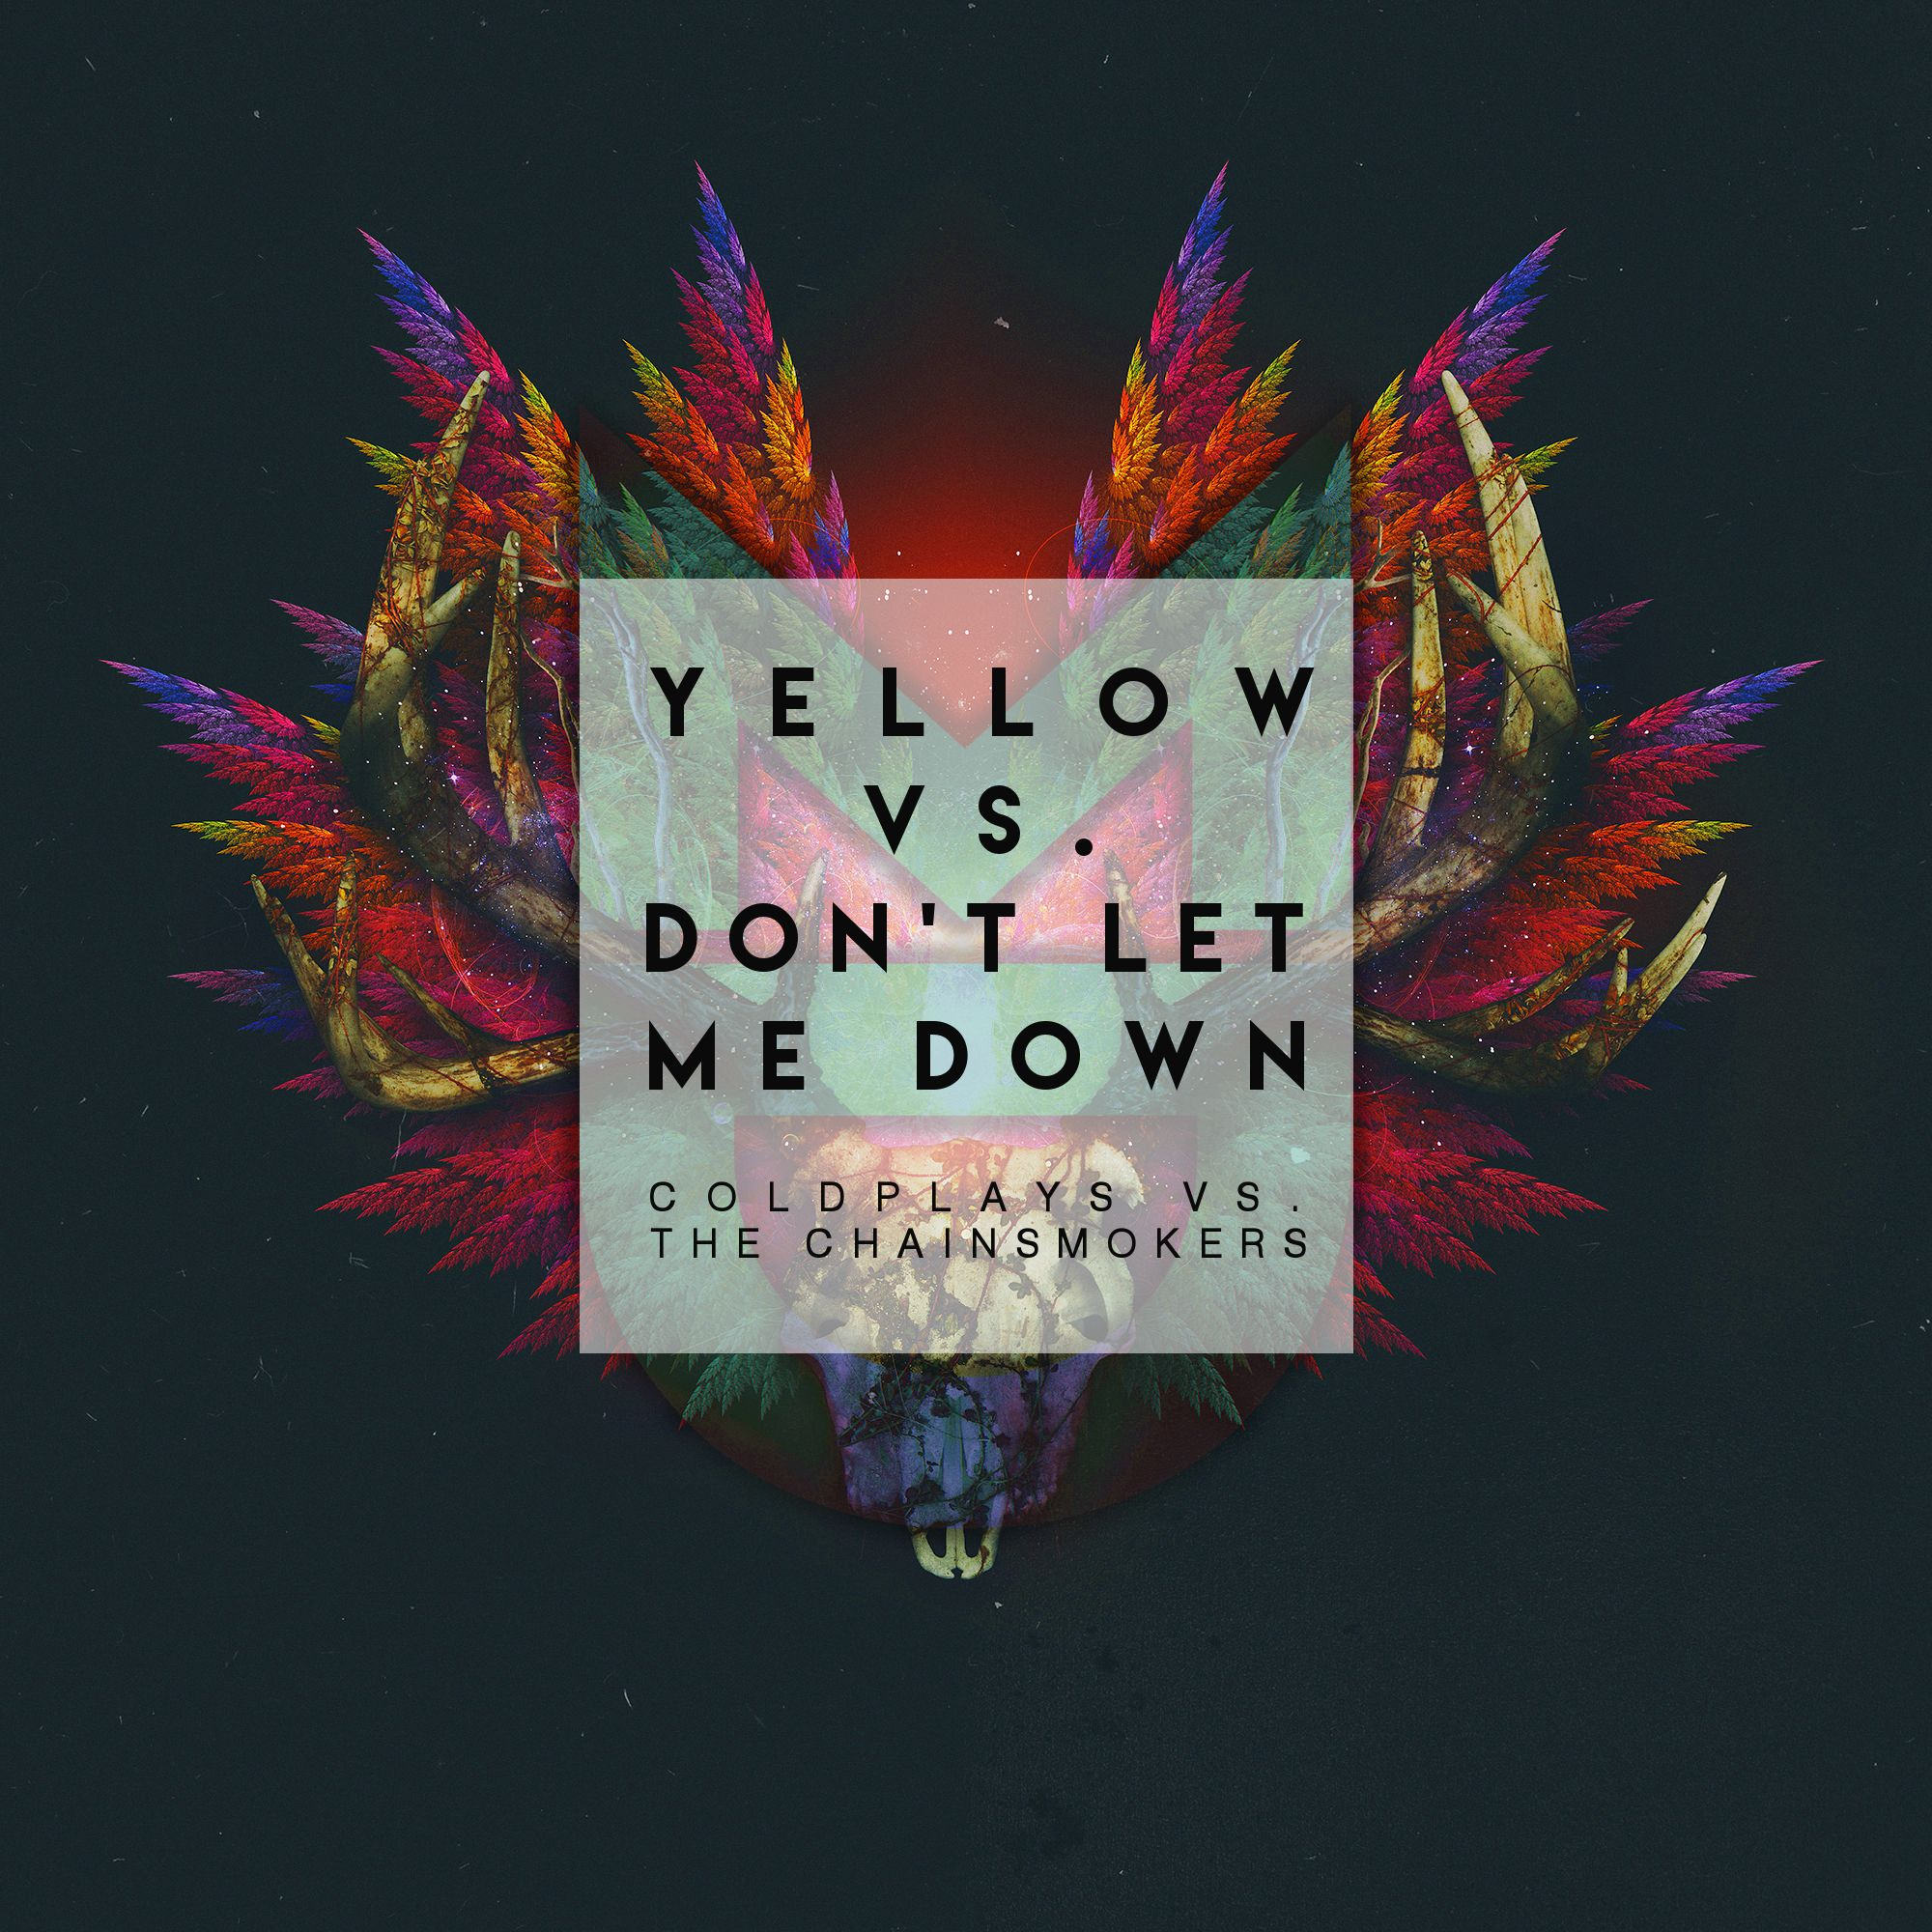 Yellow Vs Don T Let Me Down Mike Destiny Edit By Coldplay Vs The Chainsmokers Free Download On Hypeddit